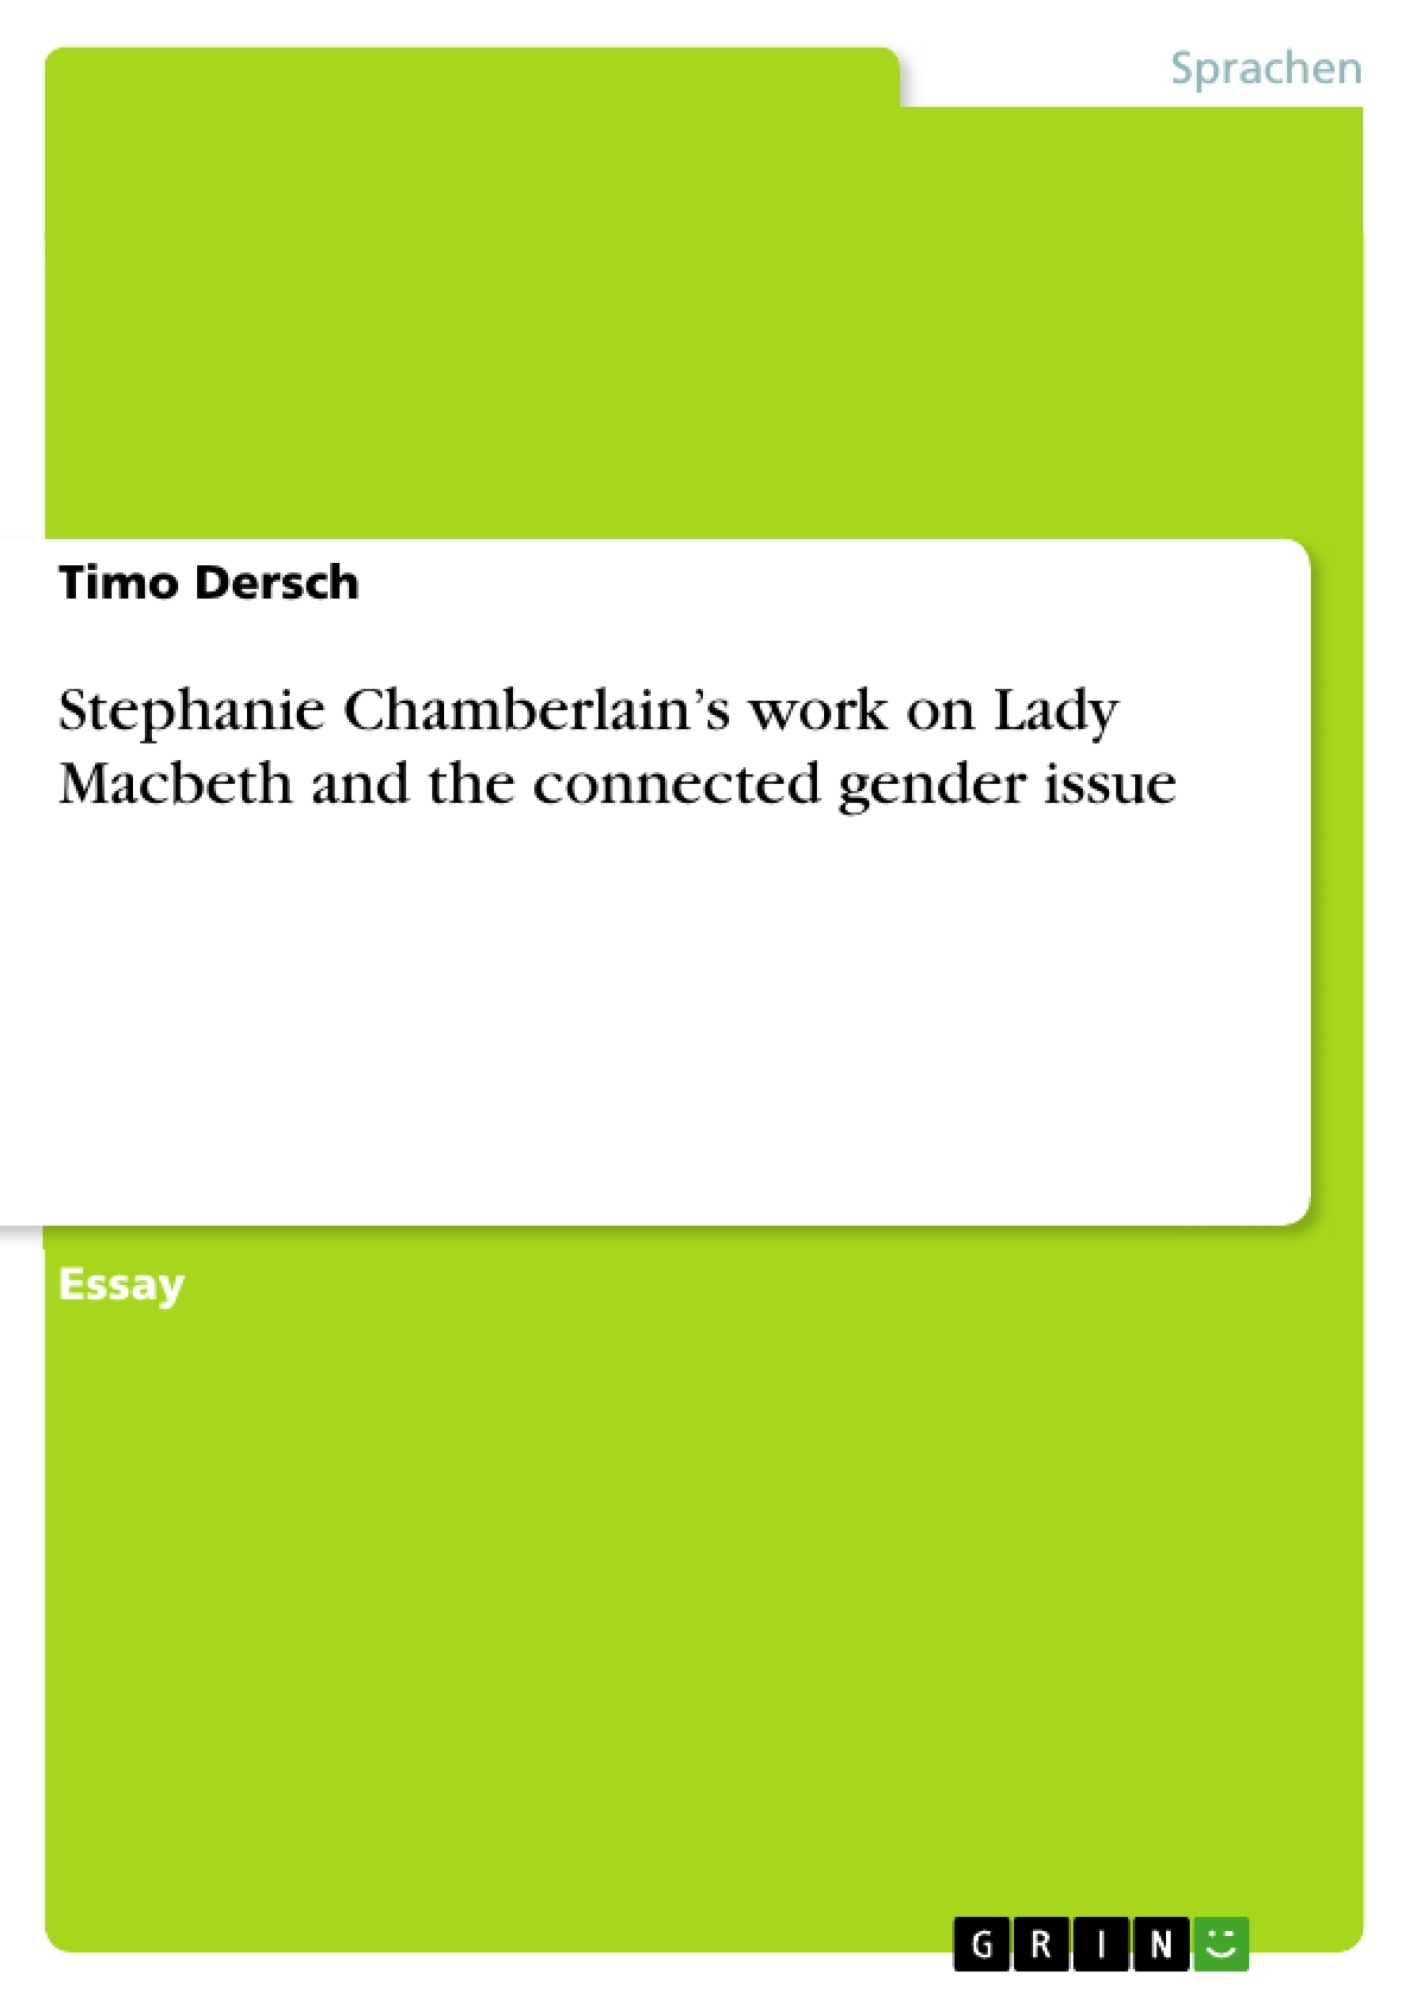 Titel: Stephanie Chamberlain's work on Lady Macbeth and the connected gender issue